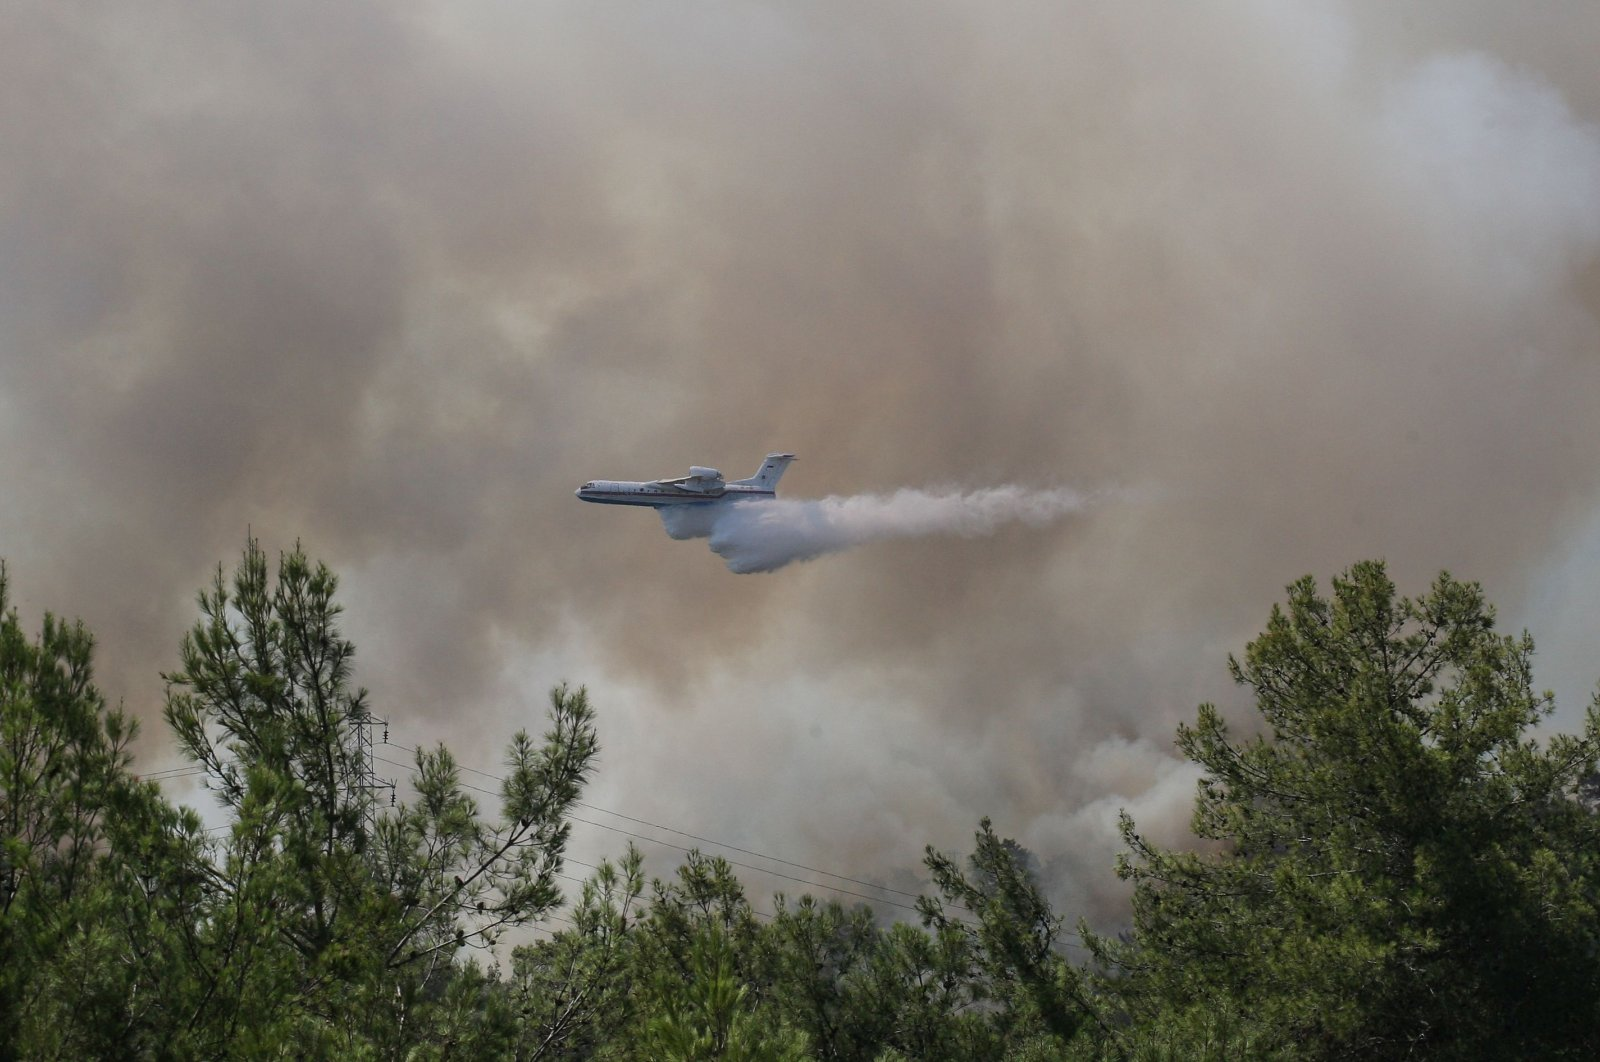 A firefighting aircraft drops water while extinguishing a forest fire near Marmaris, Turkey, July 30, 2021. (Reuters Photo)